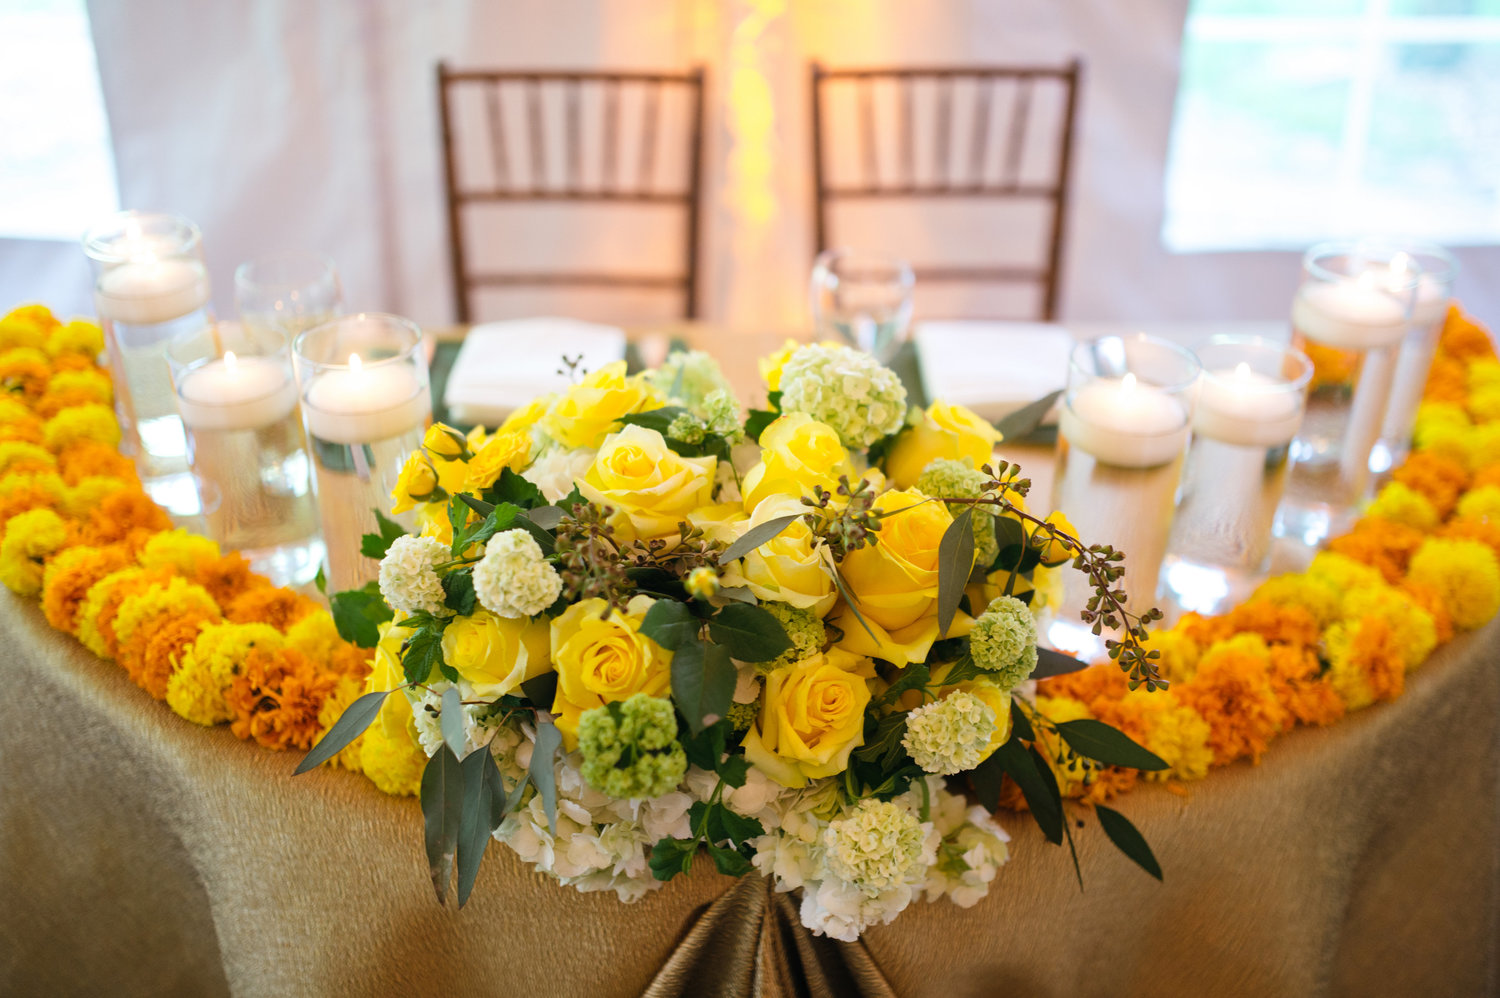 Imperial Decor - Costly Wedding Mistakes